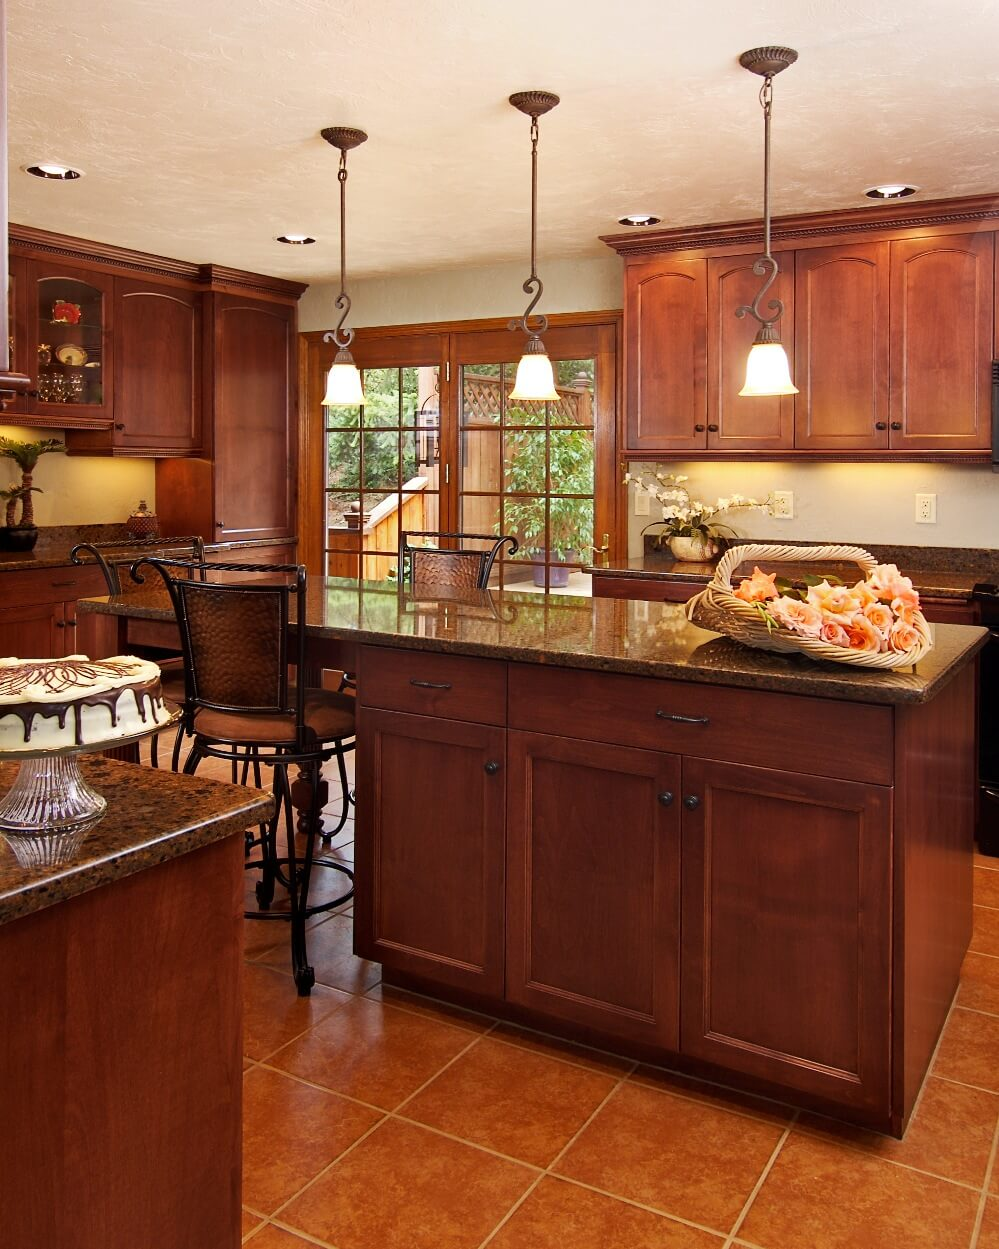 This kitchen design features dark cherry stained cabinets, black appliances, and Cambria counters.